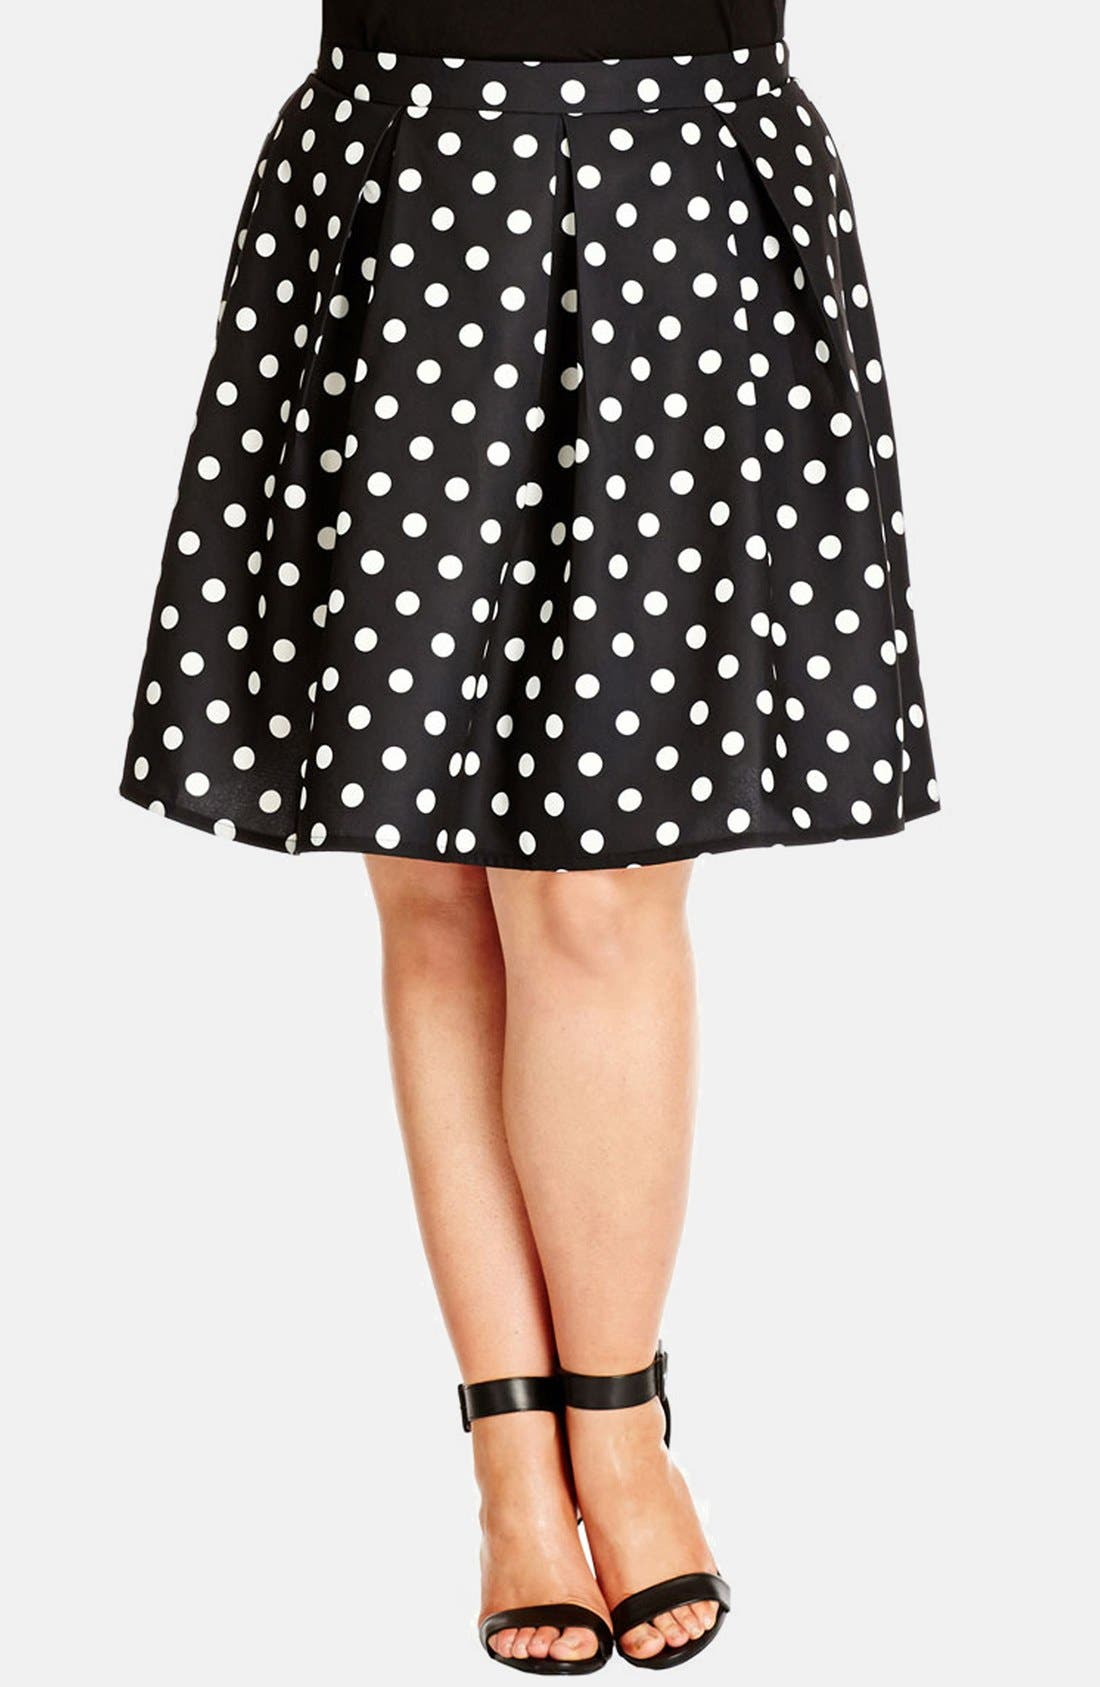 Alternate Image 1 Selected - City Chic 'Candy' Full Skirt (Plus Size)